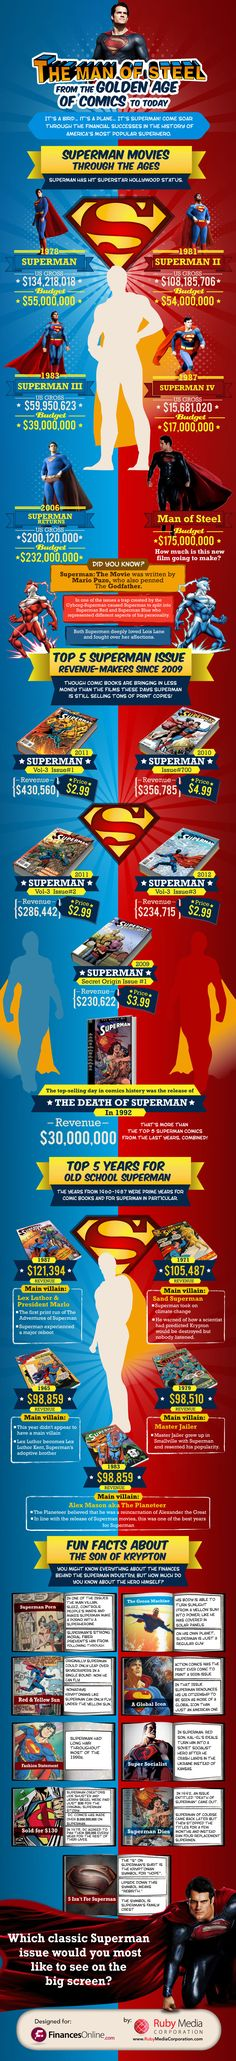 Superman has been a super-industry since he flew into the pop culture scene in 1938, heralding the Golden Age of Comics. First gaining popularity in the comic book industry, Superman has more recently been the starring hero of some of Hollywood's highest grossing films. When it comes to money making, Superman certainly possesses some sought-after powers.